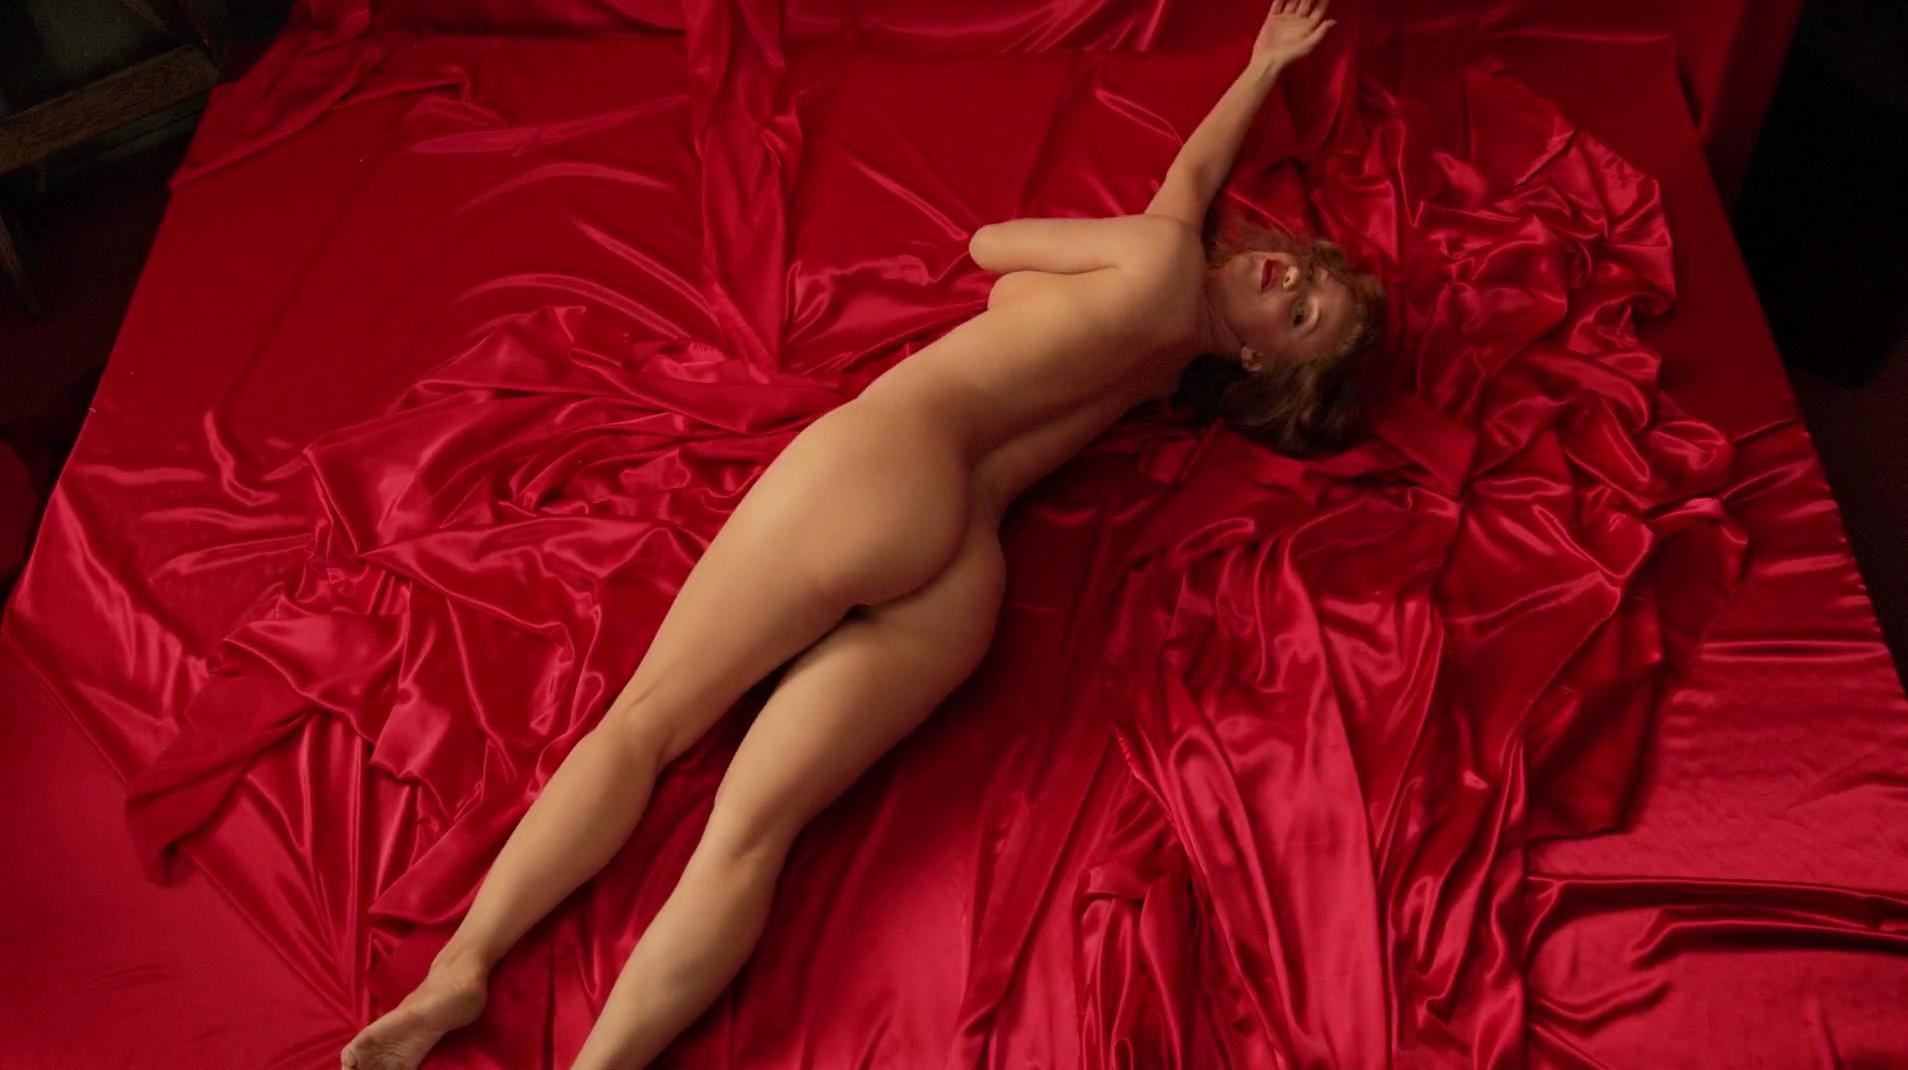 Kelli Garner nude - The Secret Life of Marilyn Monroe s01e01 (2015)